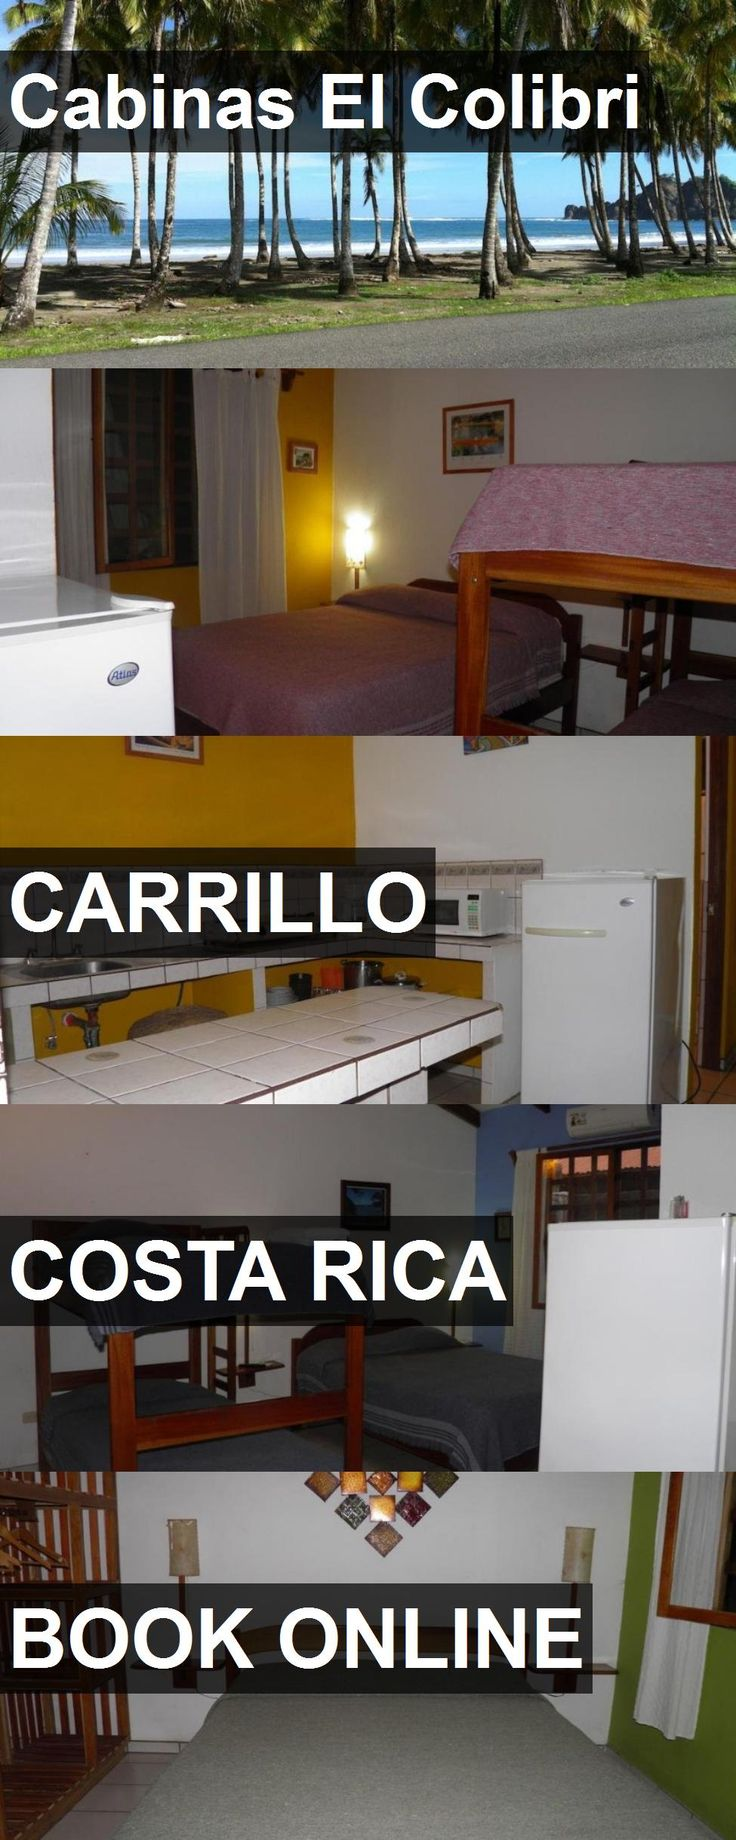 Hotel Cabinas El Colibri in Carrillo, Costa Rica. For more information, photos, reviews and best prices please follow the link. #CostaRica #Carrillo #travel #vacation #hotel